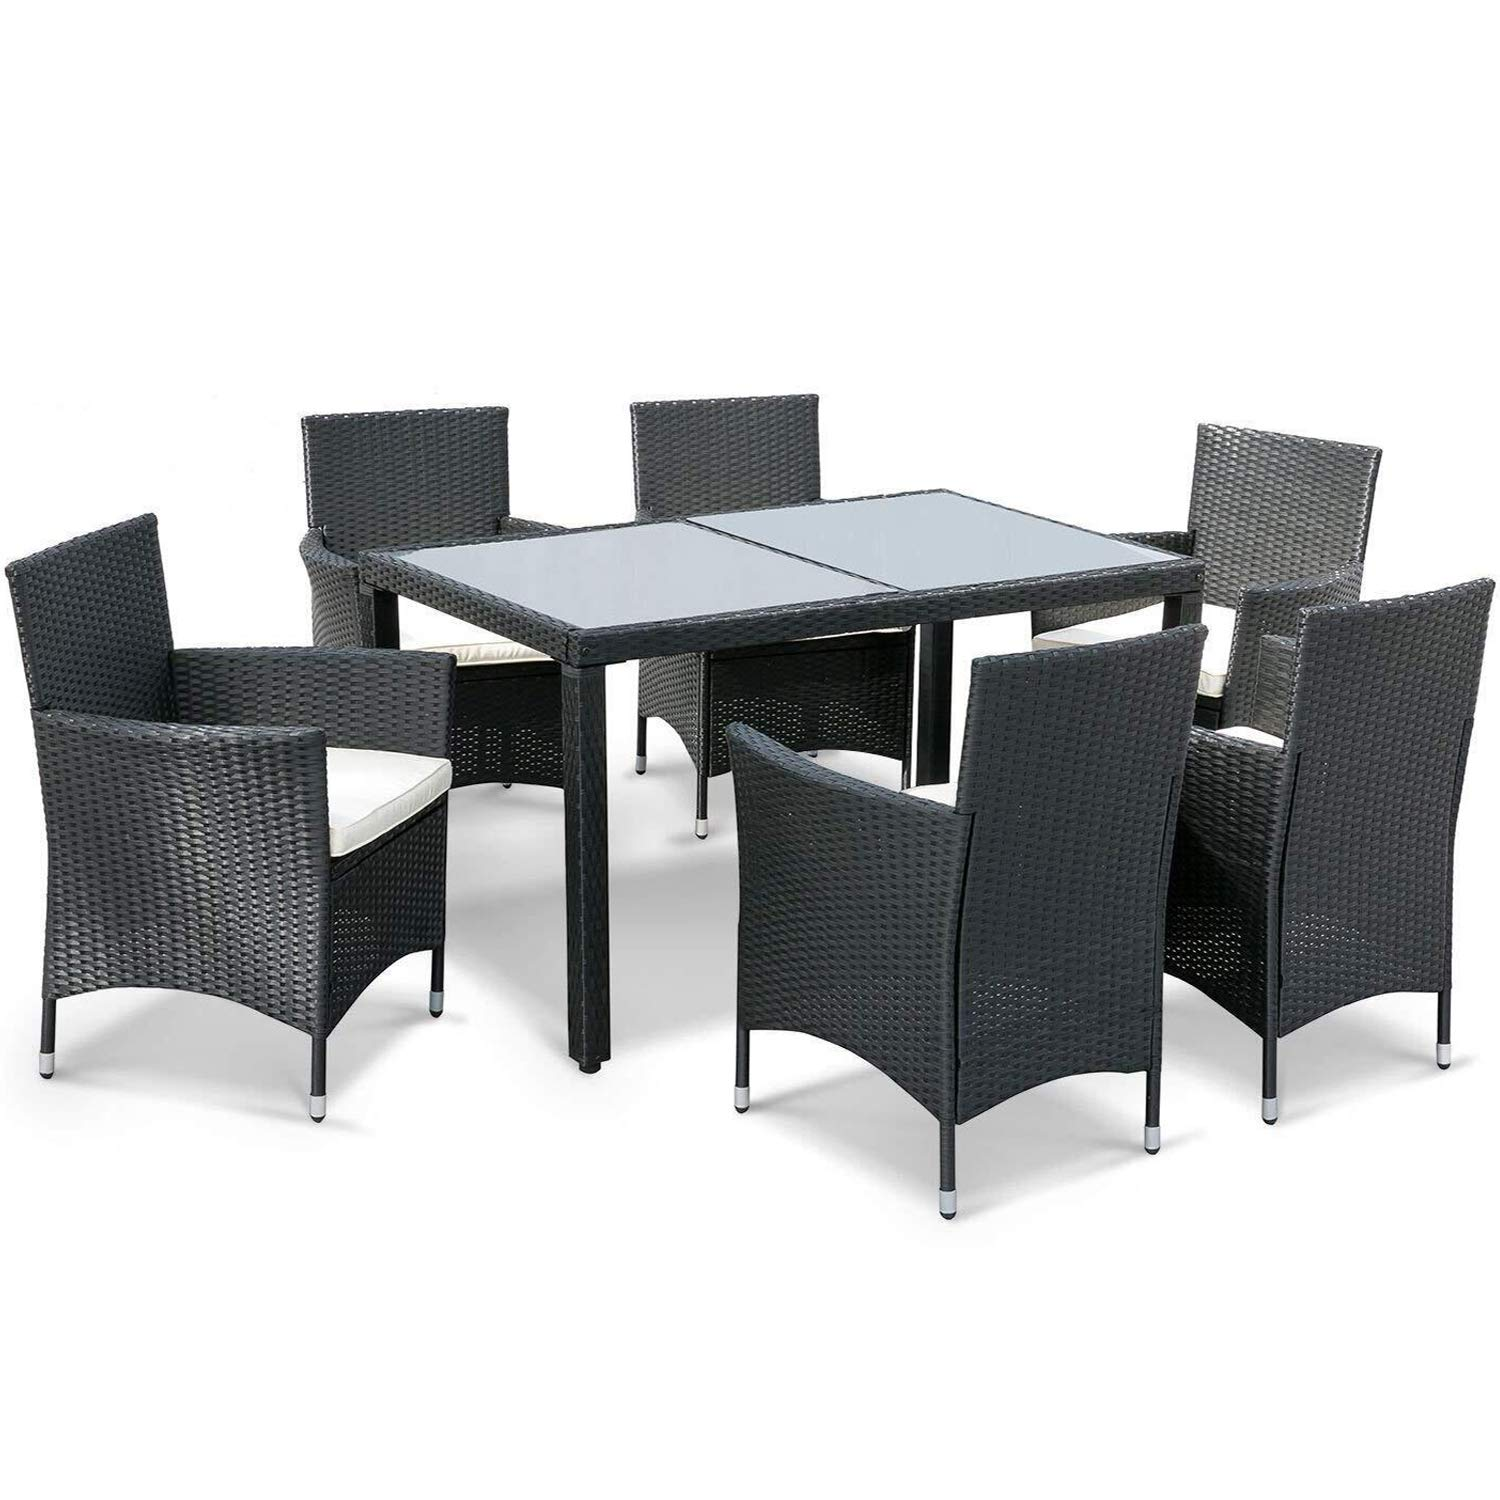 Leisure zone 7 pieces luxury garden dining table and chairs outdoor rattan furniture set with rectangular glass top weatherproof wicker rattan outdoor